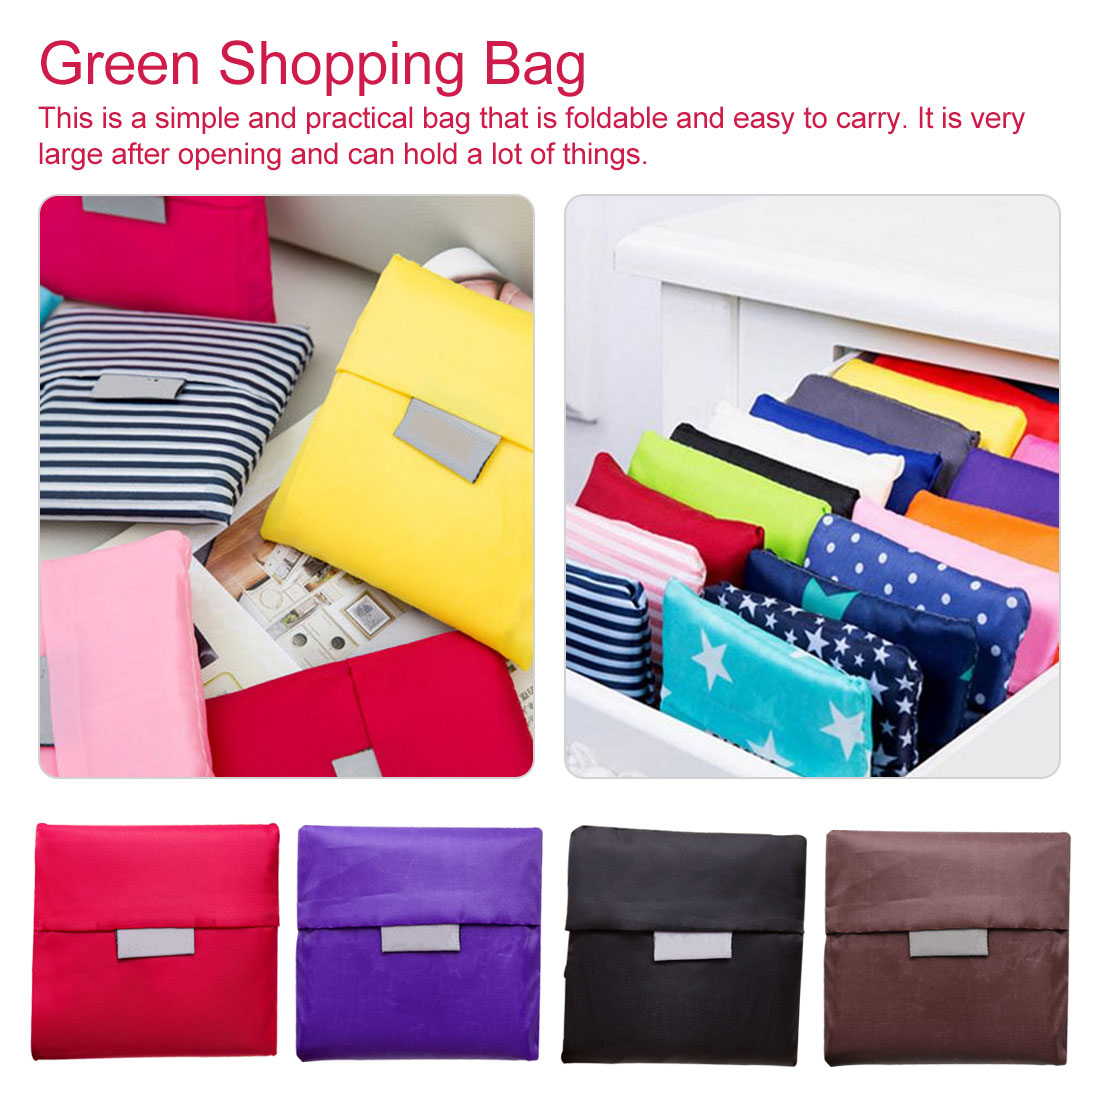 Printing Foldable Green Shopping Bag Folding Pouch Handbags Large-capacity Storage Bags Reusable Foldable Shopping Bag